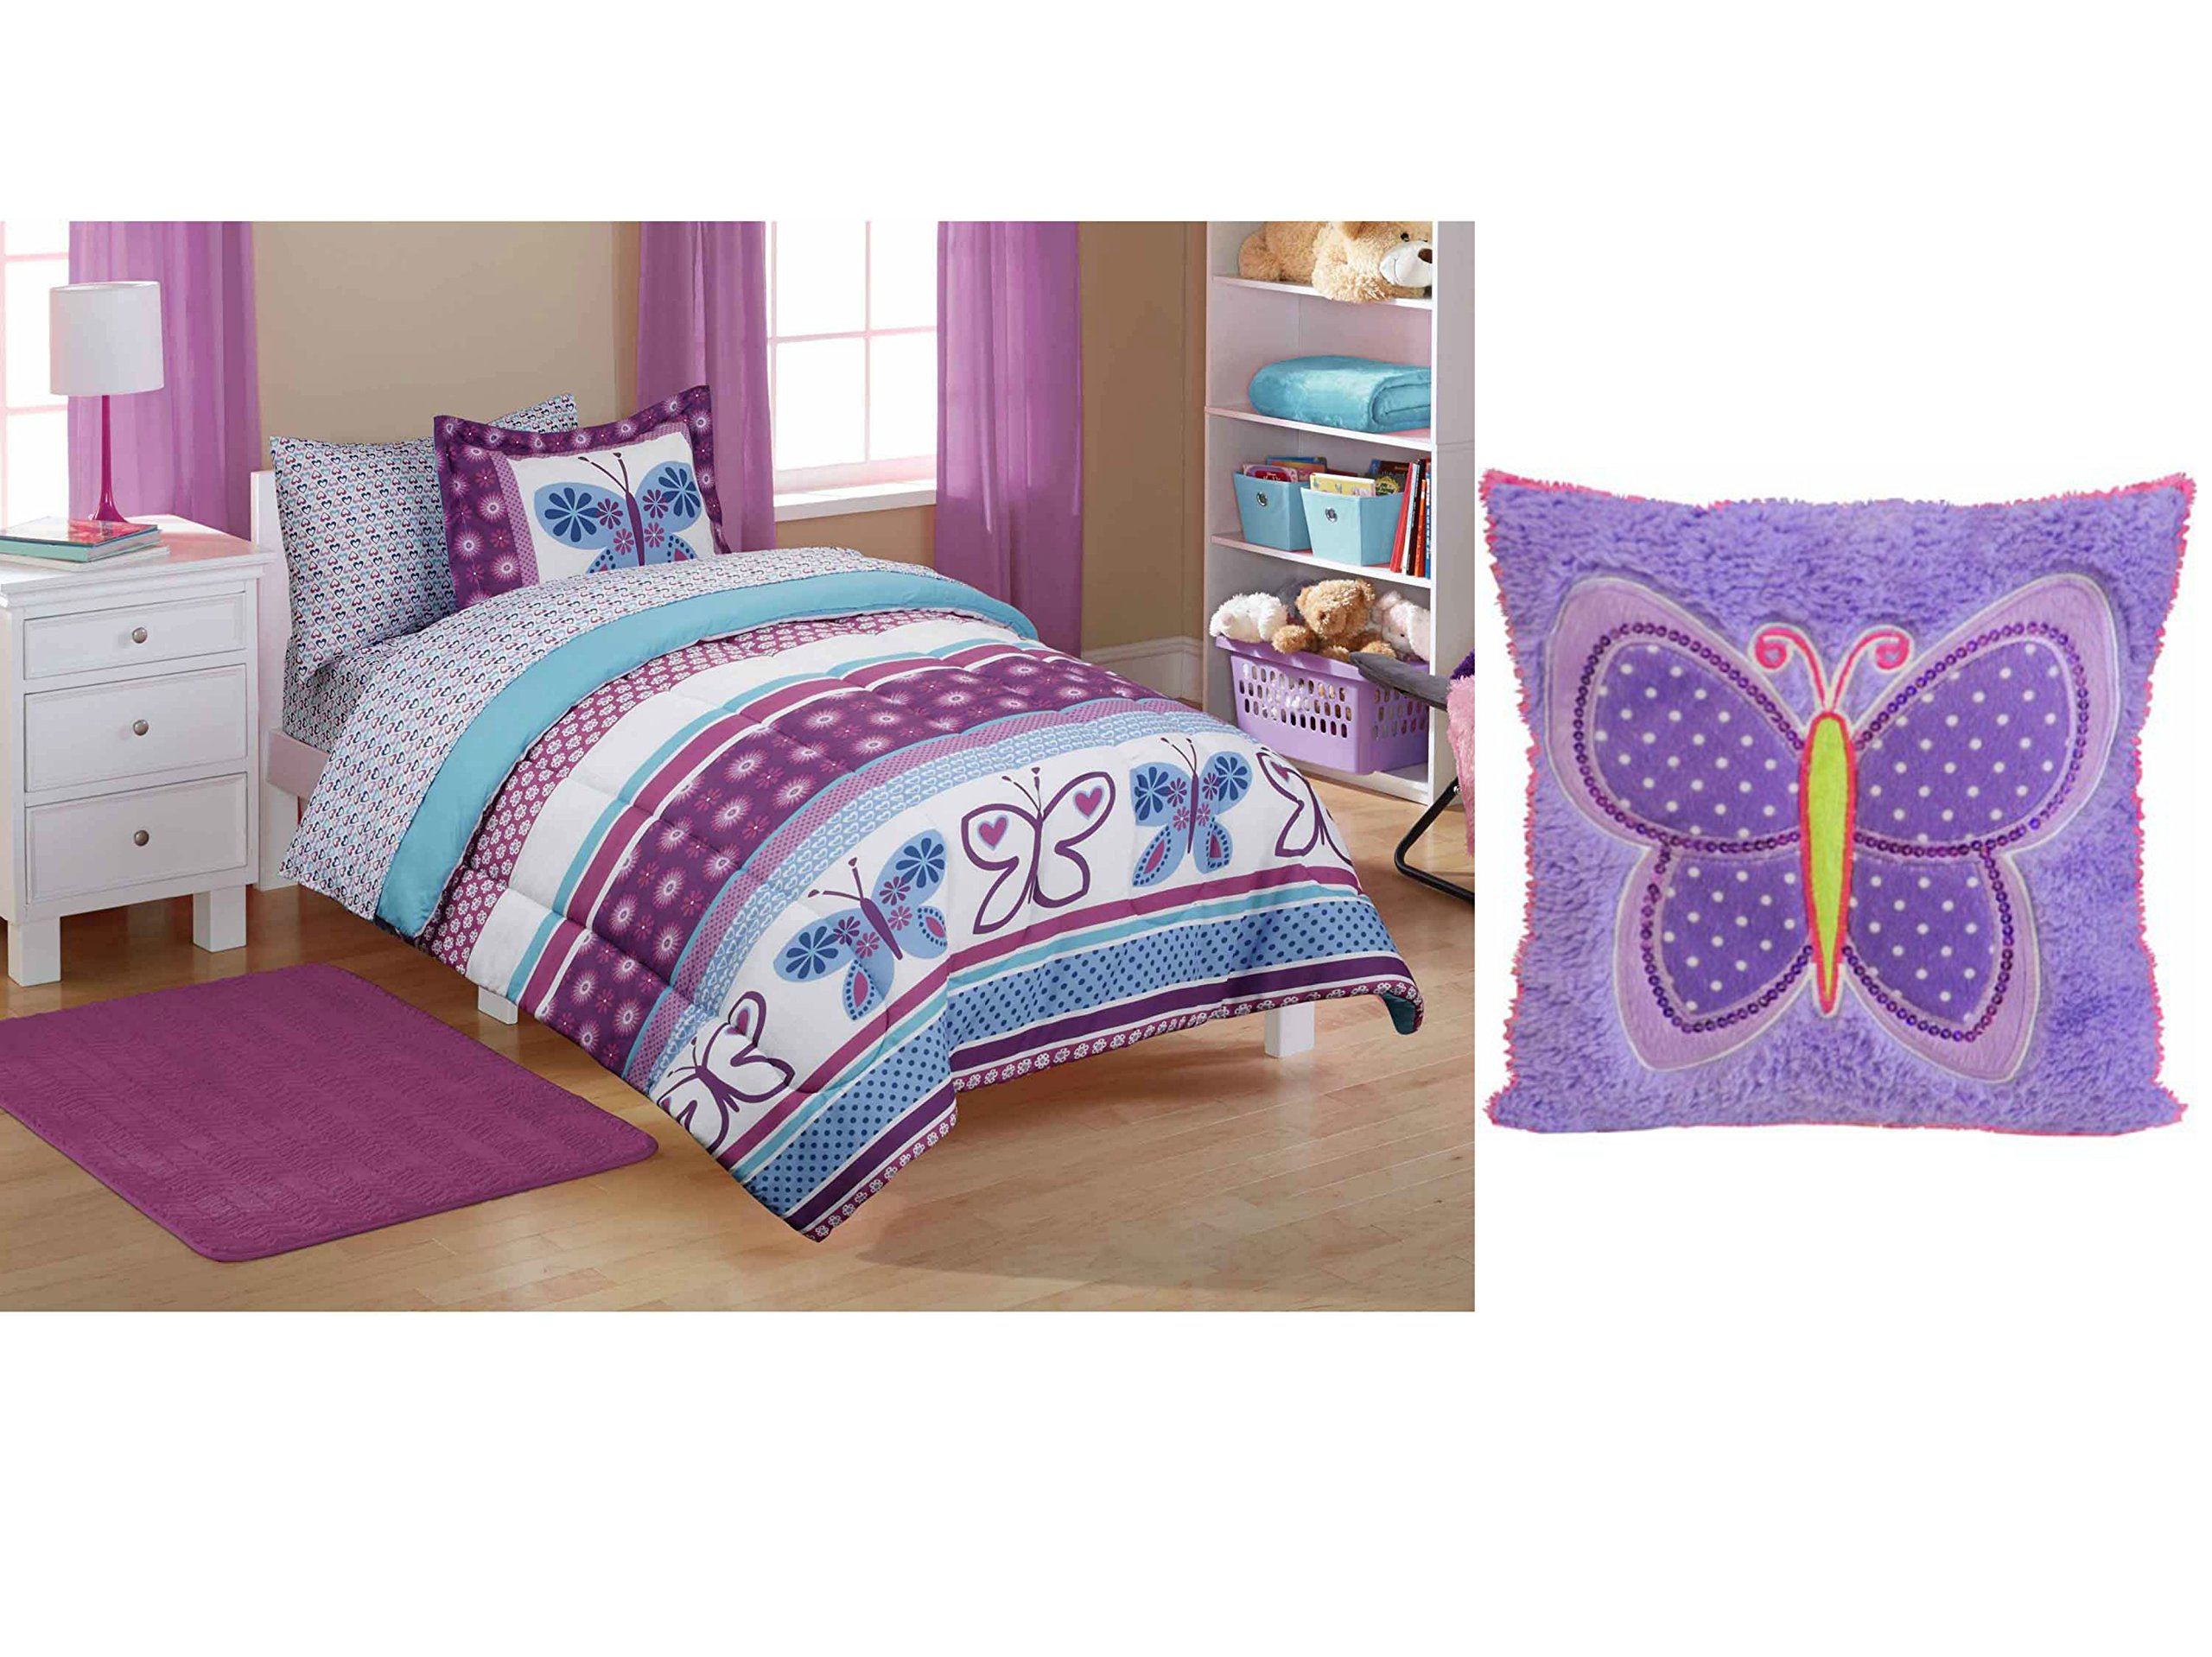 Mainstays Kids' Purple Butterfly Coordinated 5-Piece TWIN Size Bed in a Bag with Mainstays Kids Decorative Pillow with Butterfly Patches